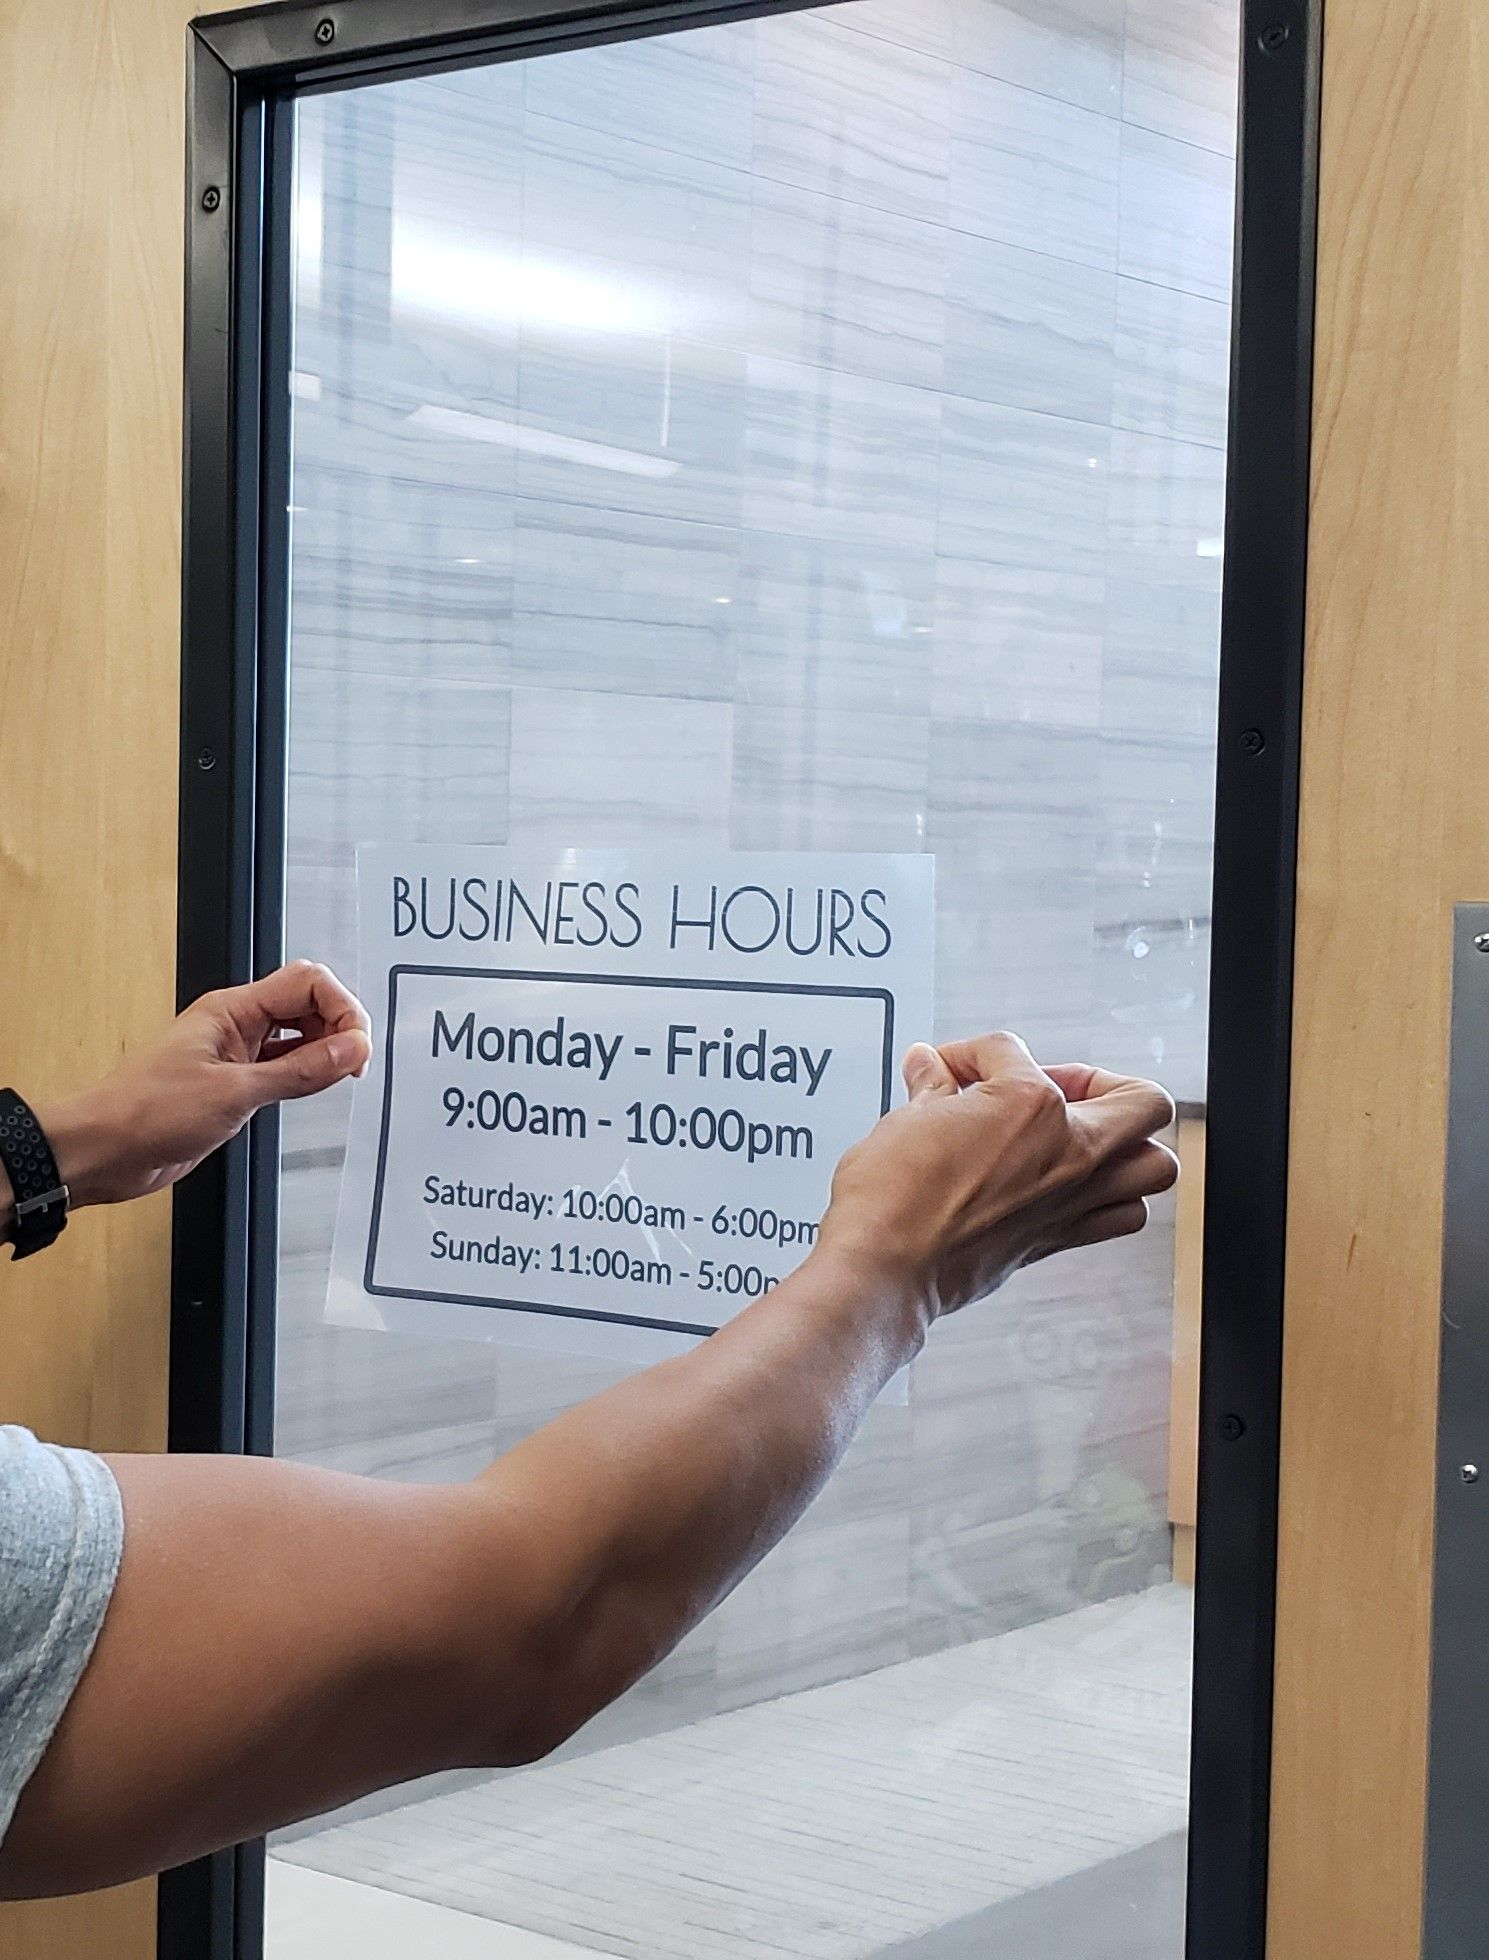 Print Your Own Store Window Signs So Customers Know Your Hours Of Operation Works With Clear Labels Or Colored One Store Hours Sign Business Hours Sign Labels